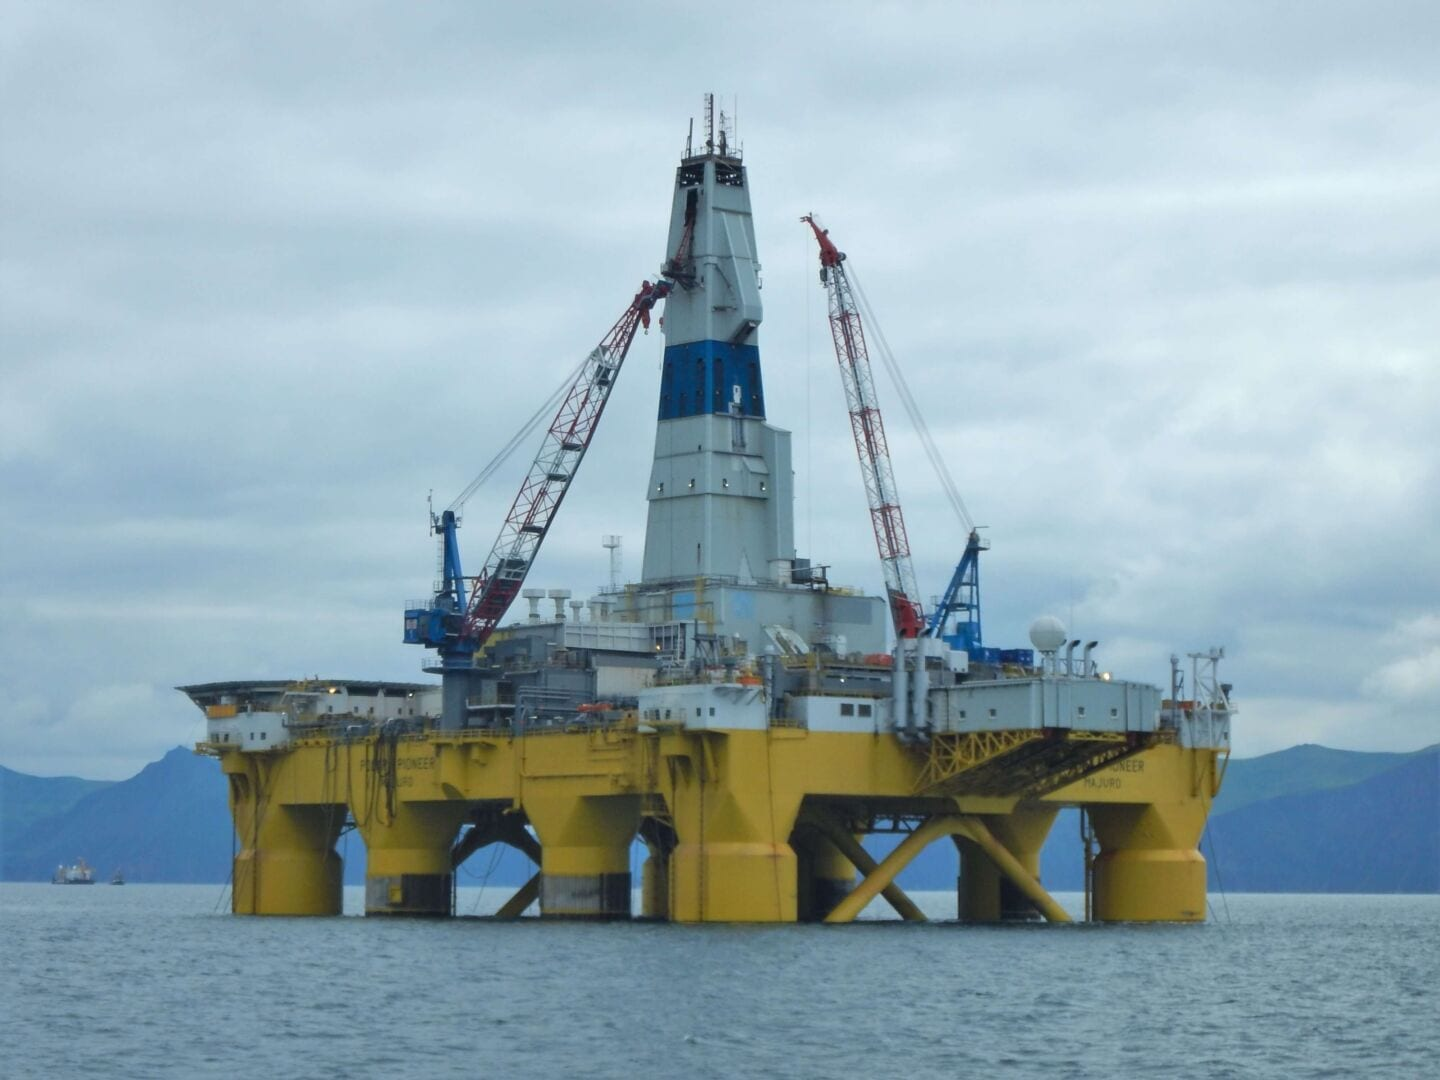 fell on oil rig injury compensation